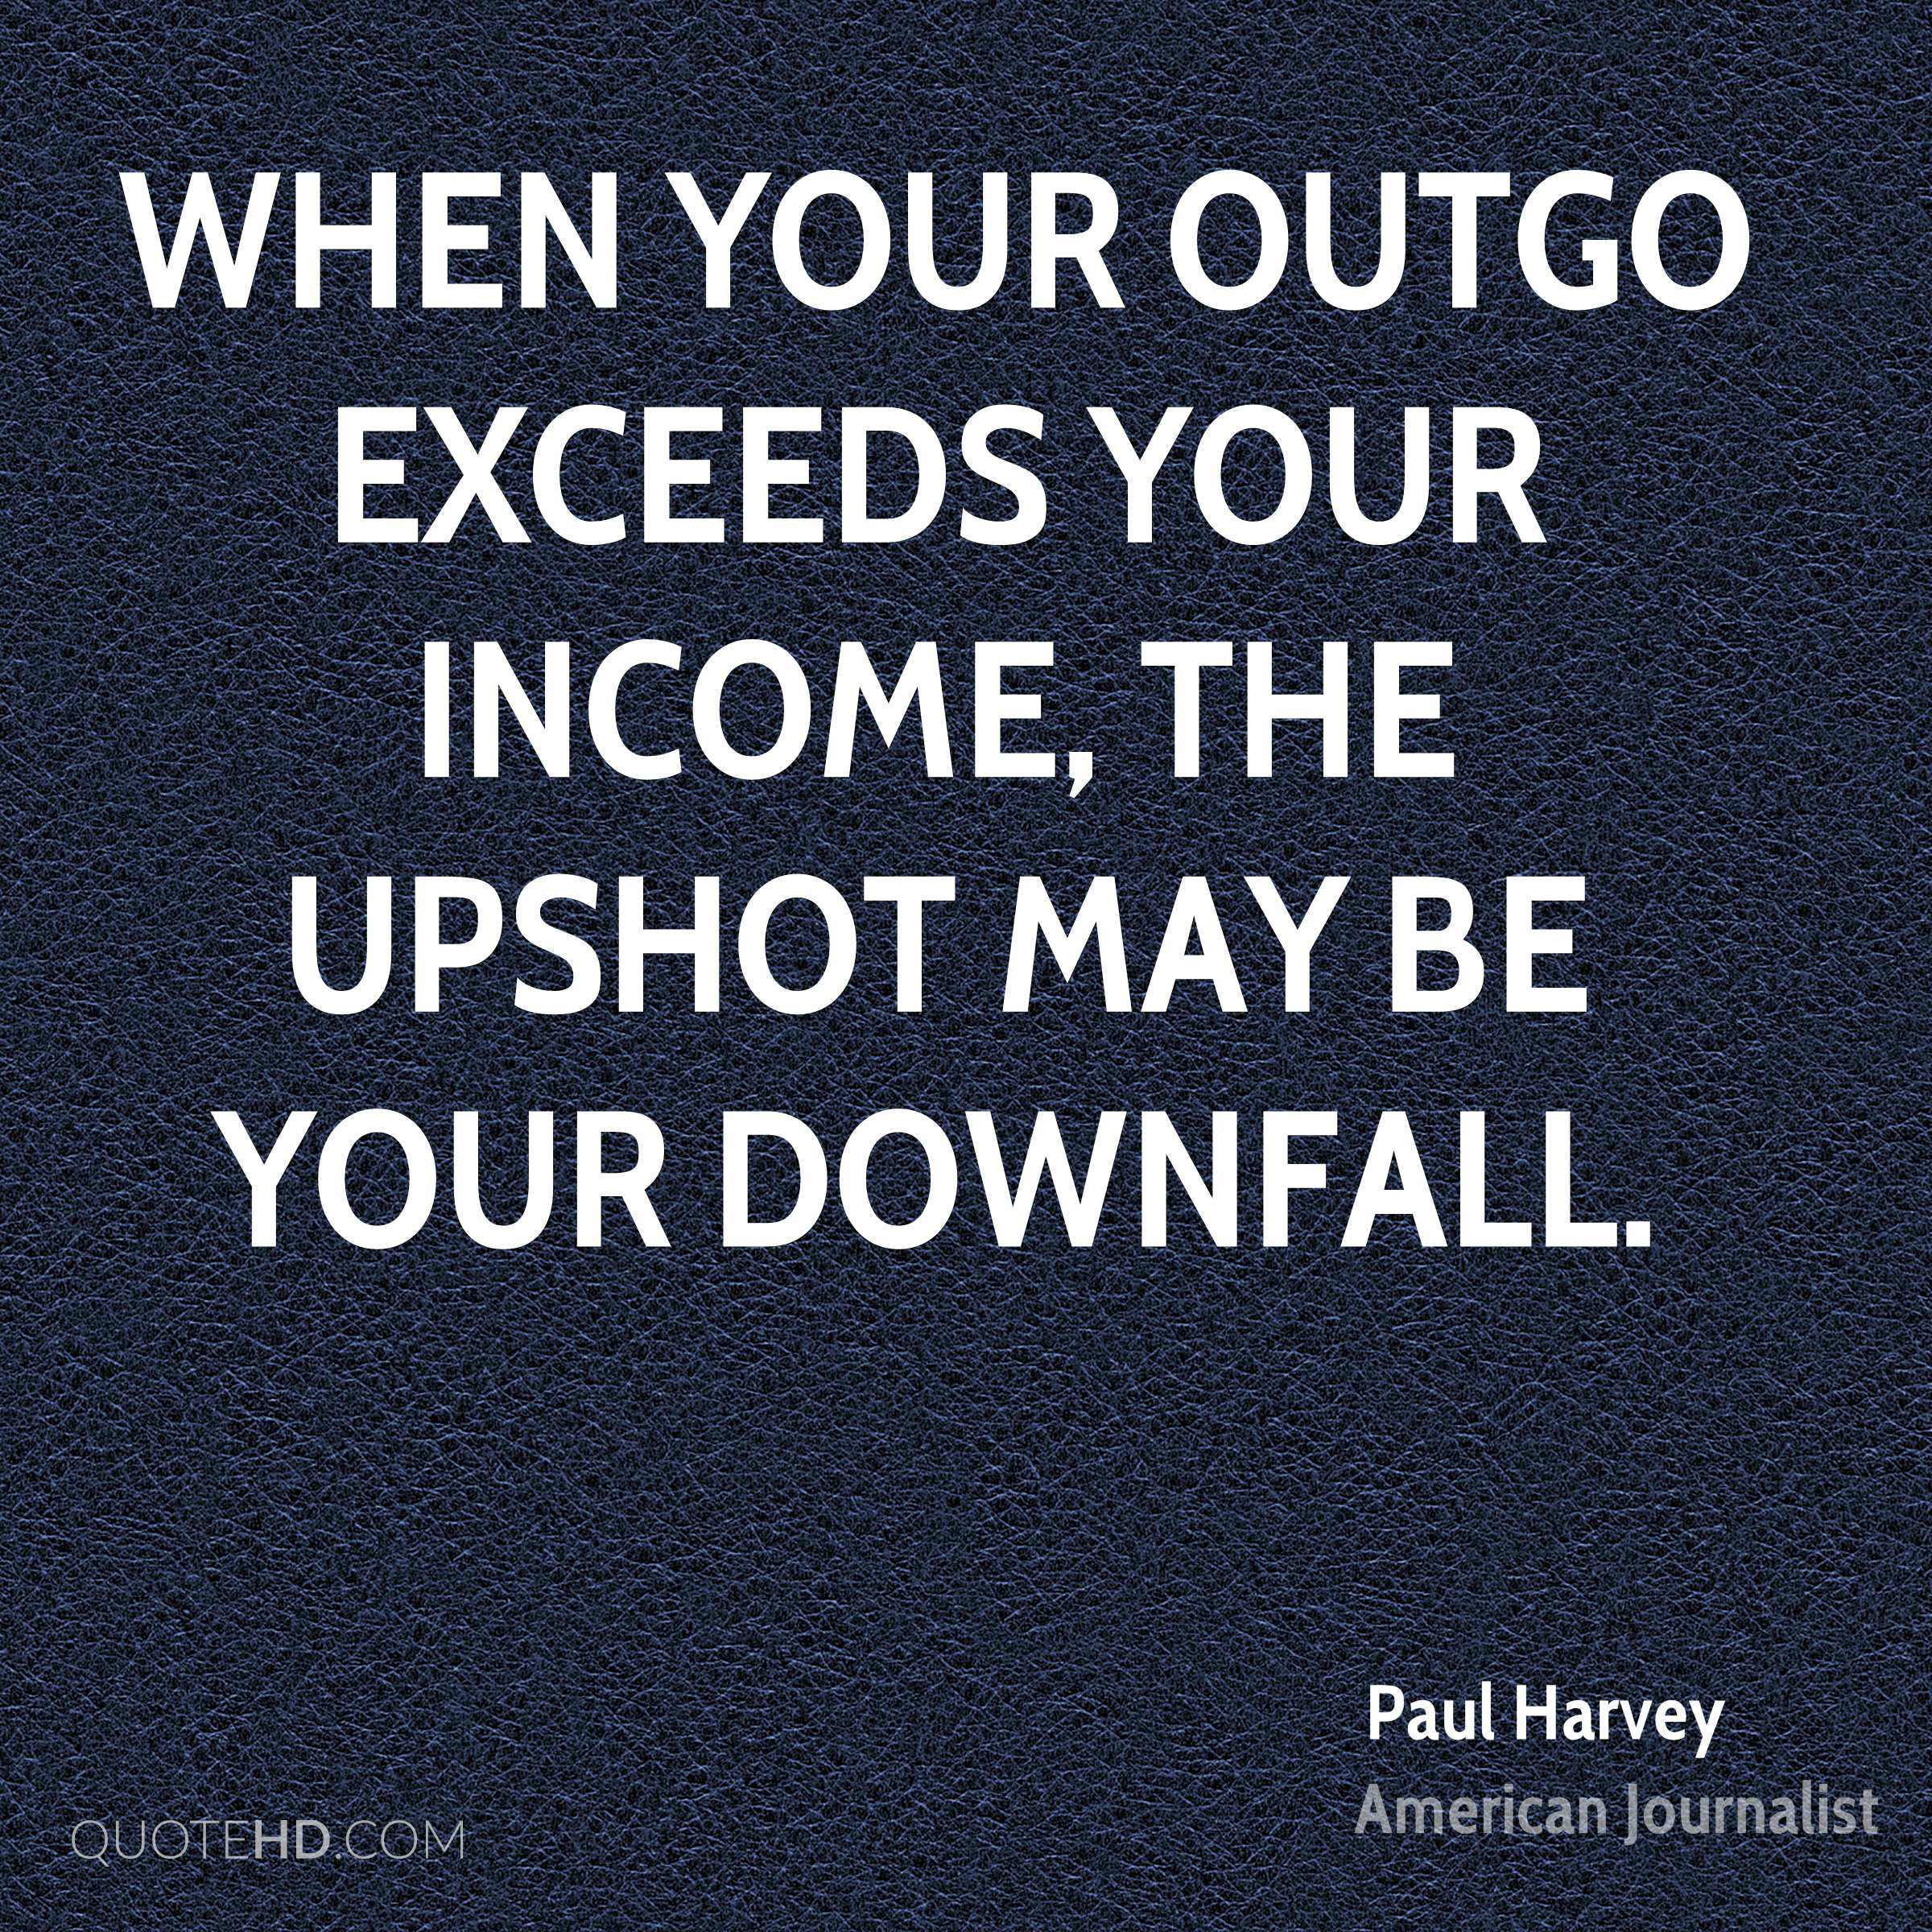 When your outgo exceeds your income, the upshot may be your downfall.